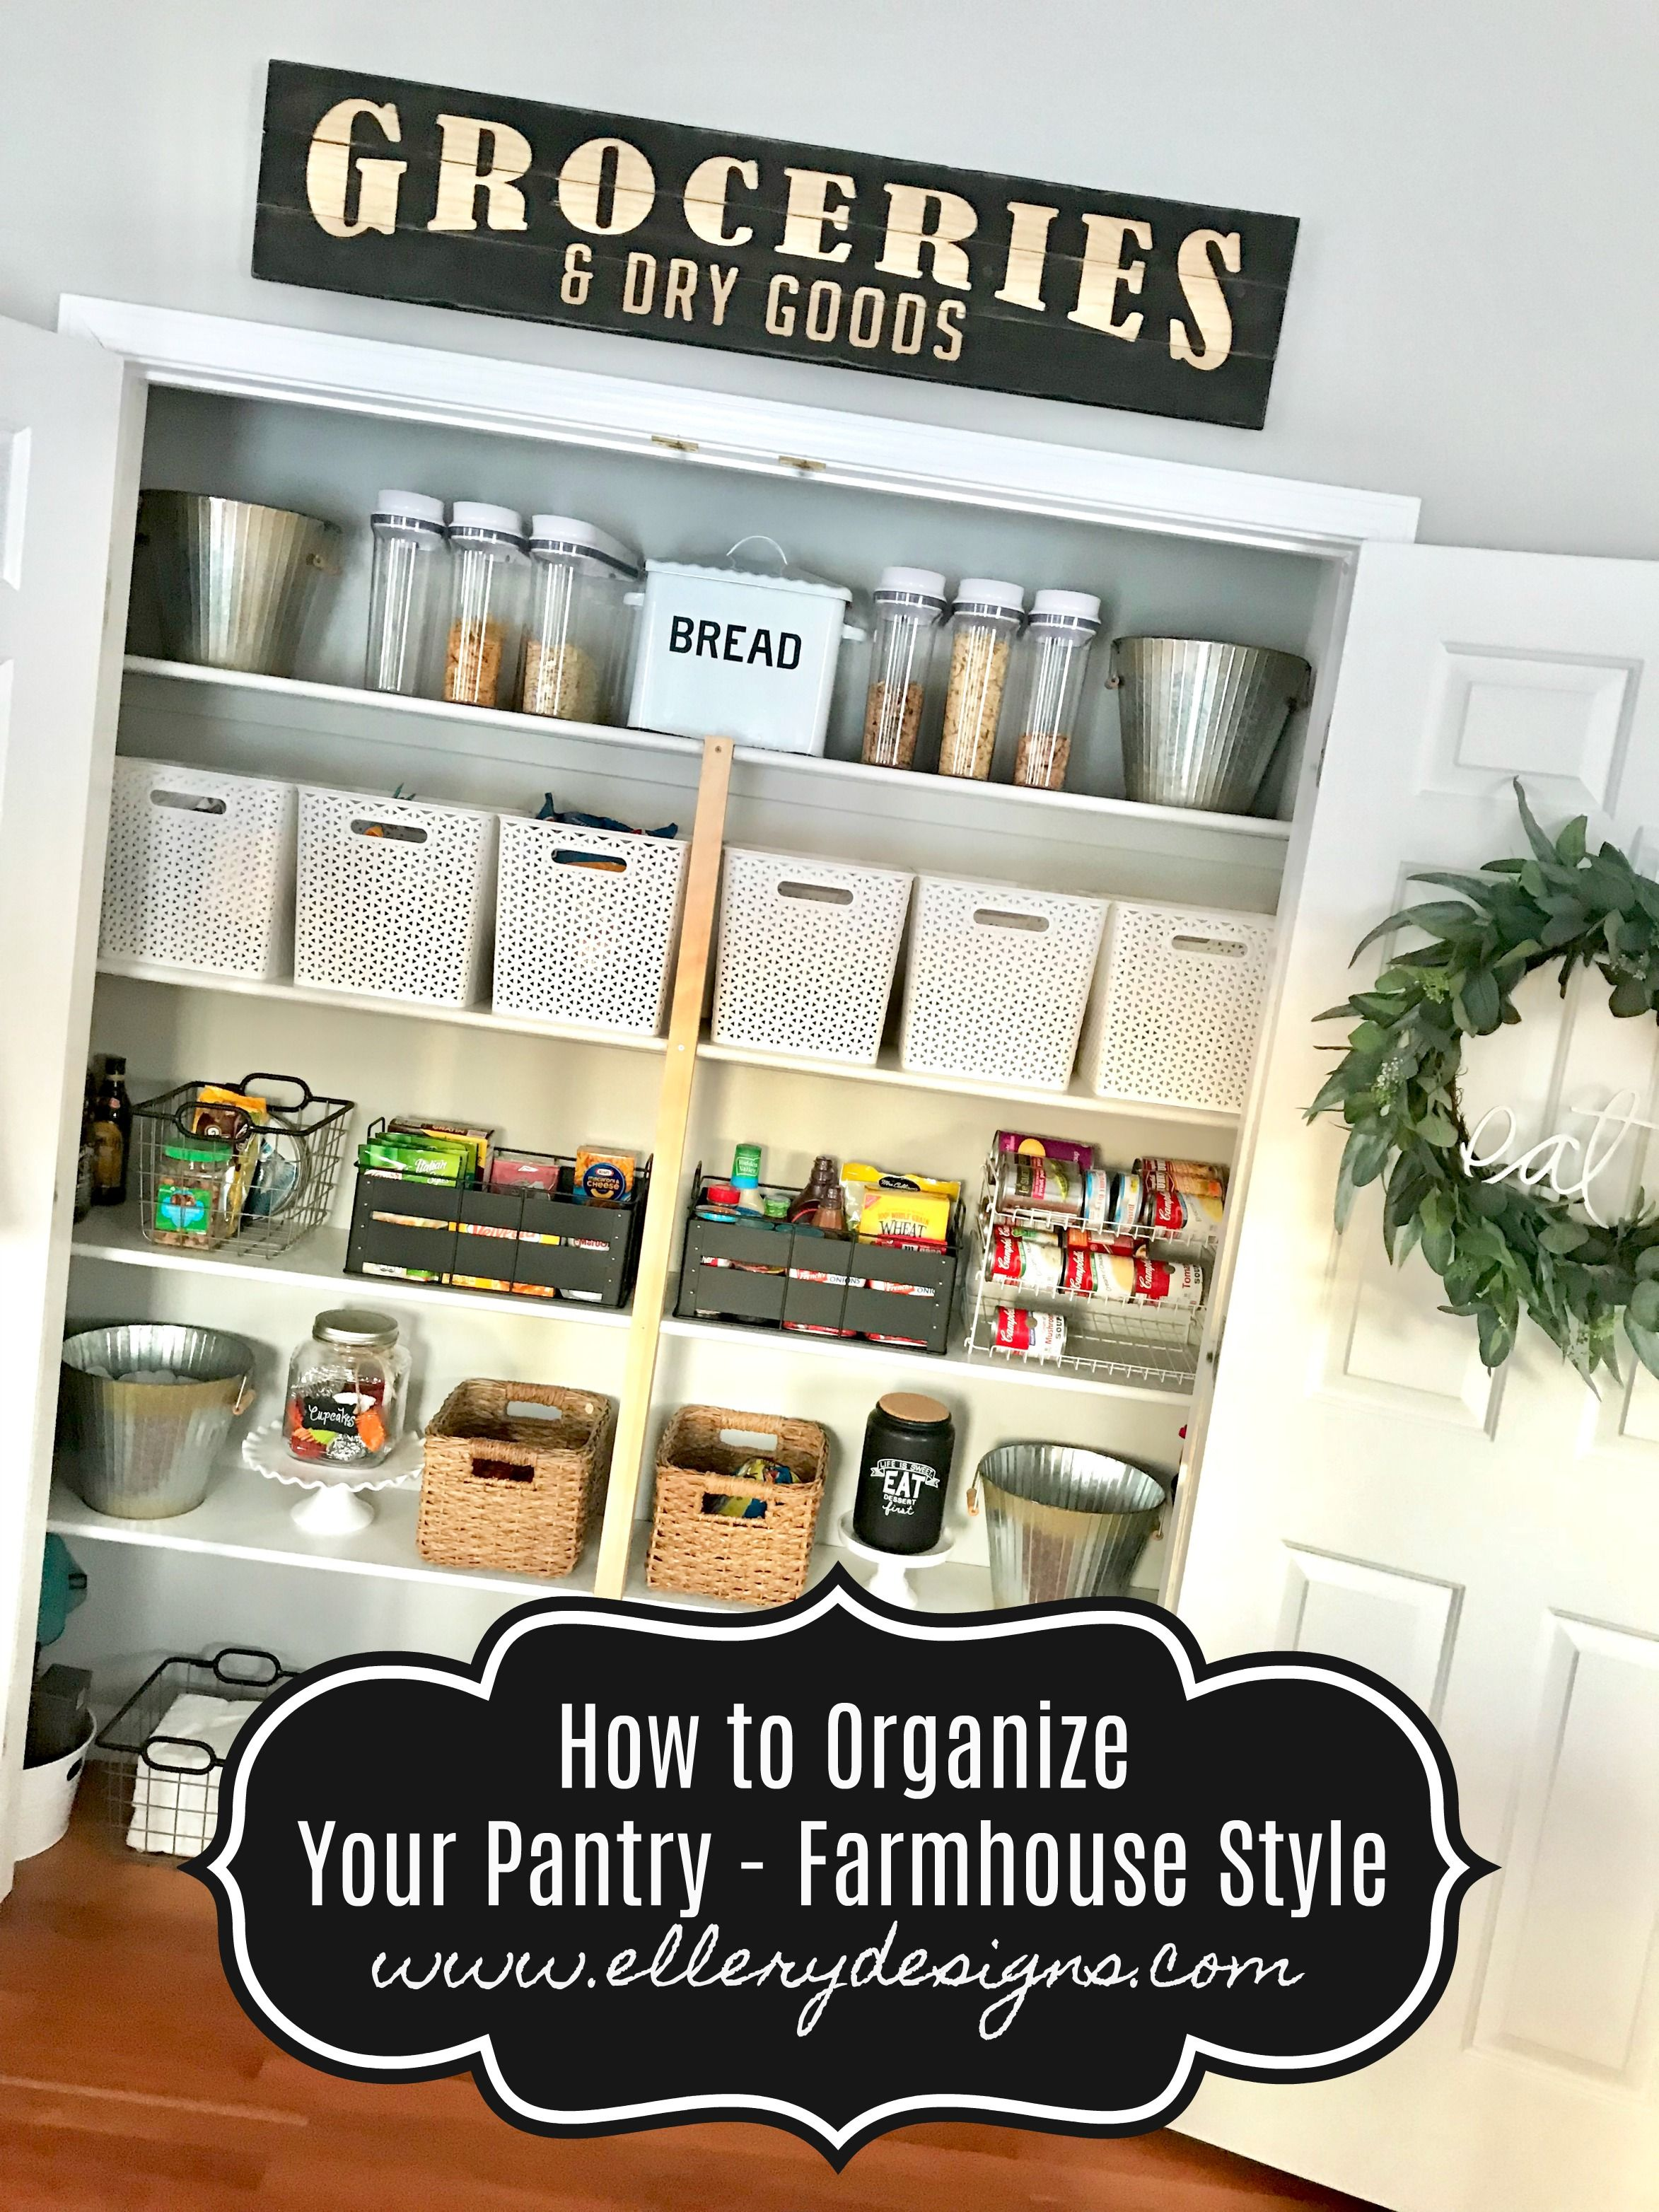 How to organize your pantry - farmhouse style – www.ElleryDesigns.com